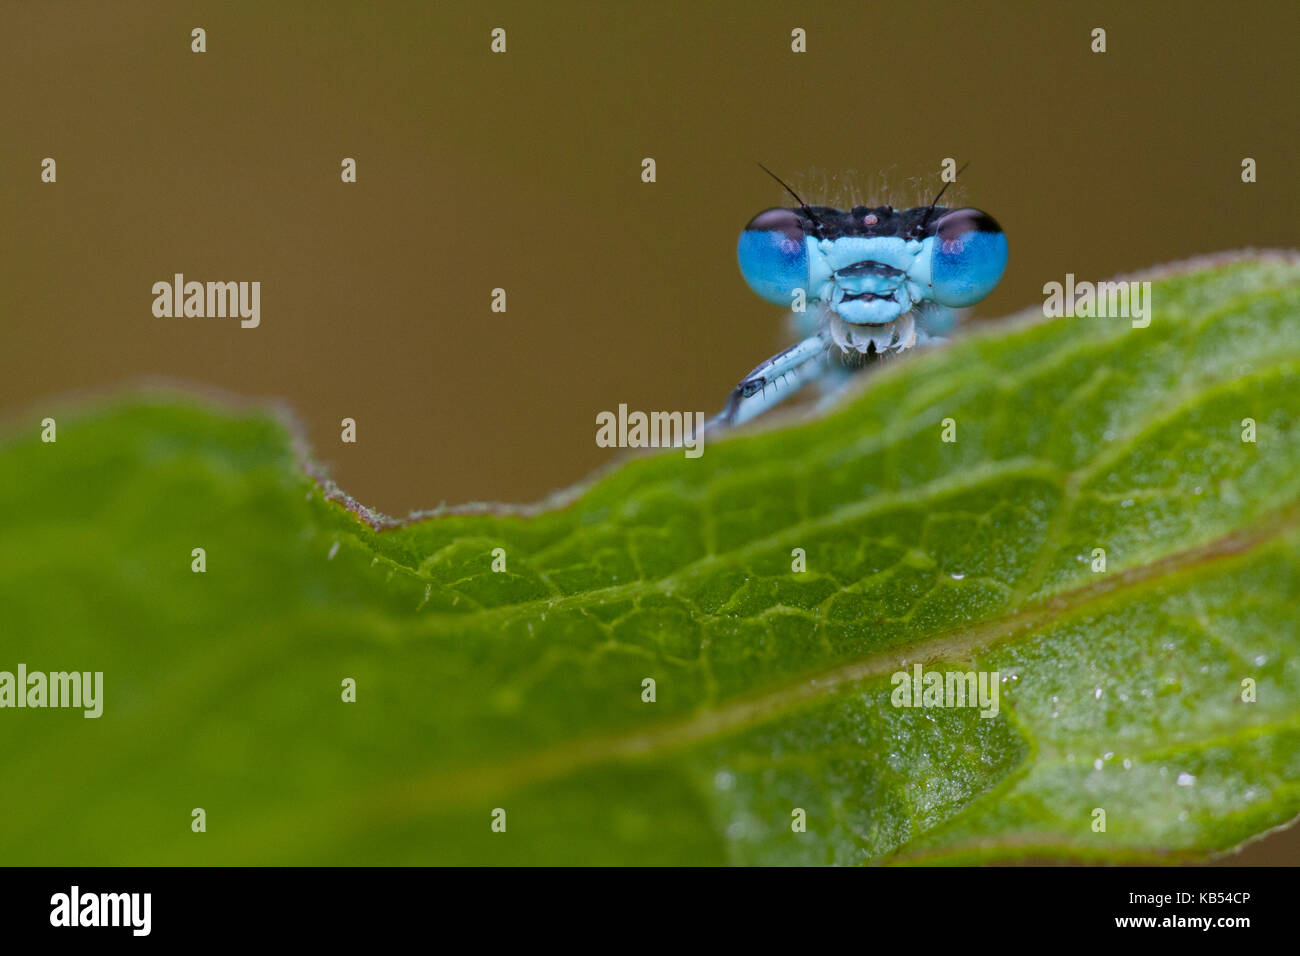 Azure Bluet (Coenagrion puella) peeking over the edge of a leaf, The Netherlands - Stock Image